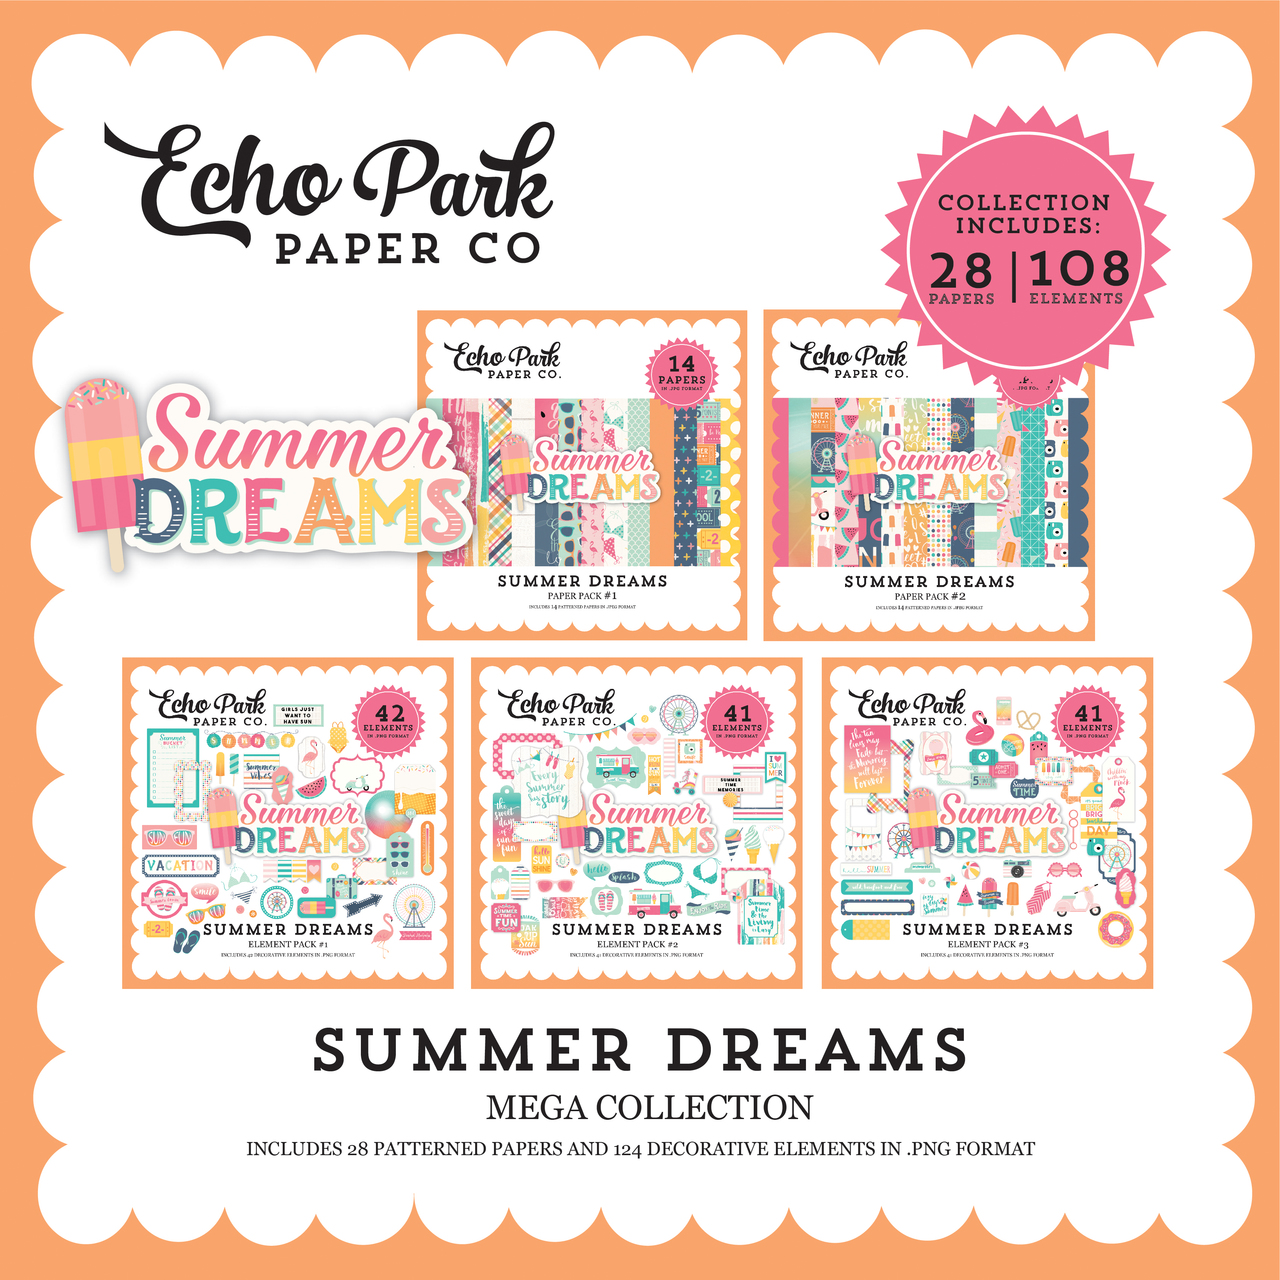 Summer Dreams Mega Collection